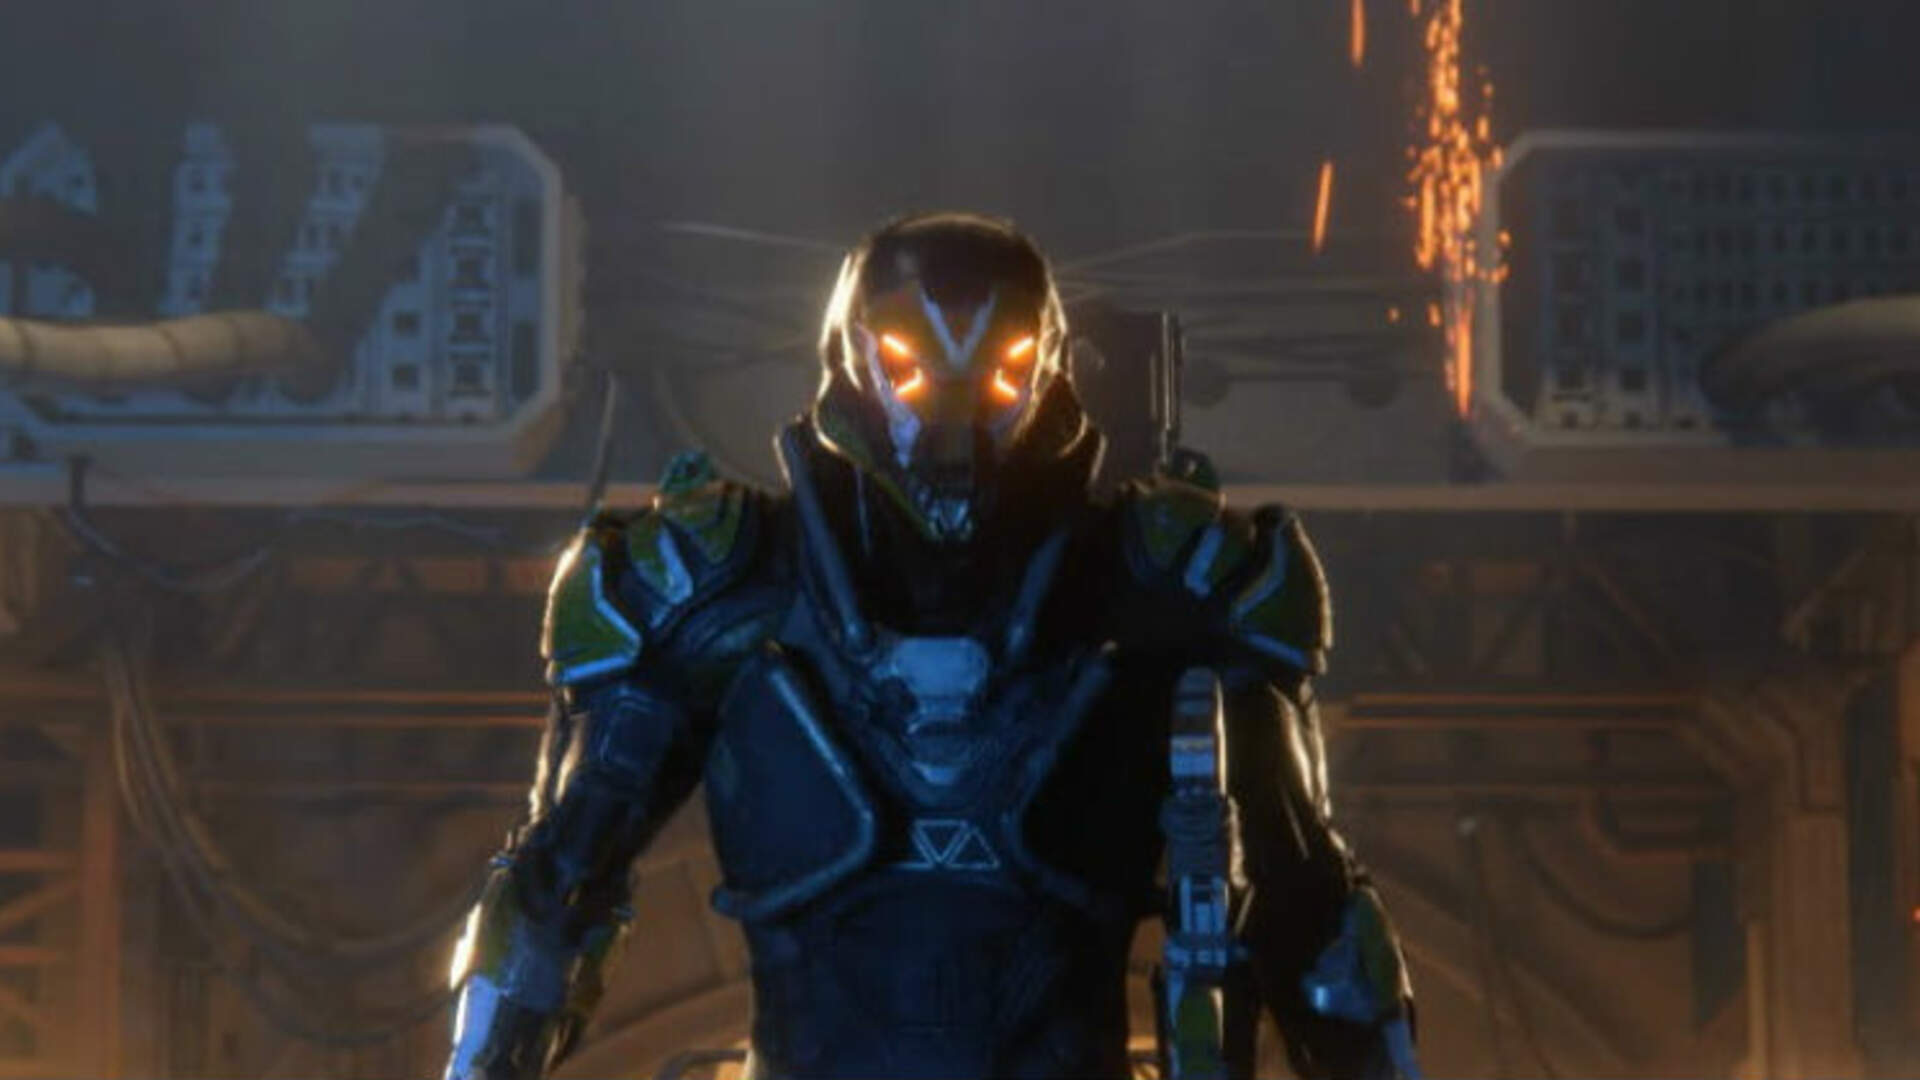 Anthem Demo for PlayStation 4 is Just an Edited Version of the Xbox One X Demo